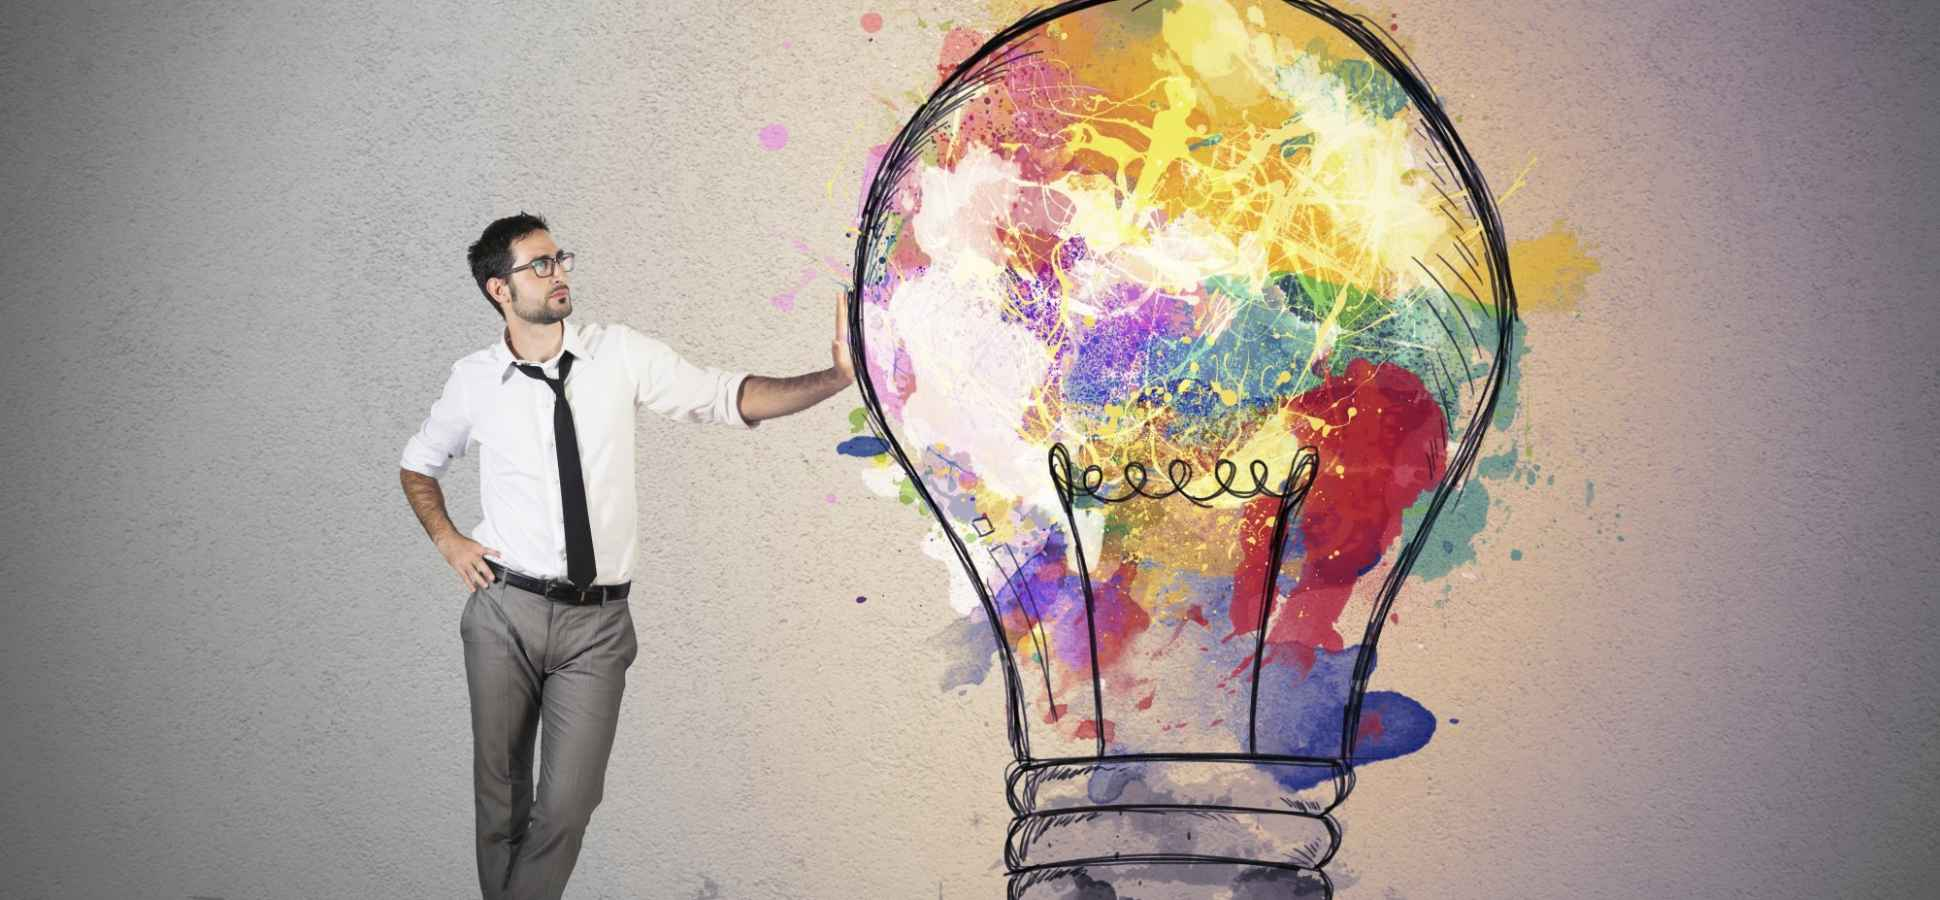 3 Surefire Ways To Jumpstart Your Creativity